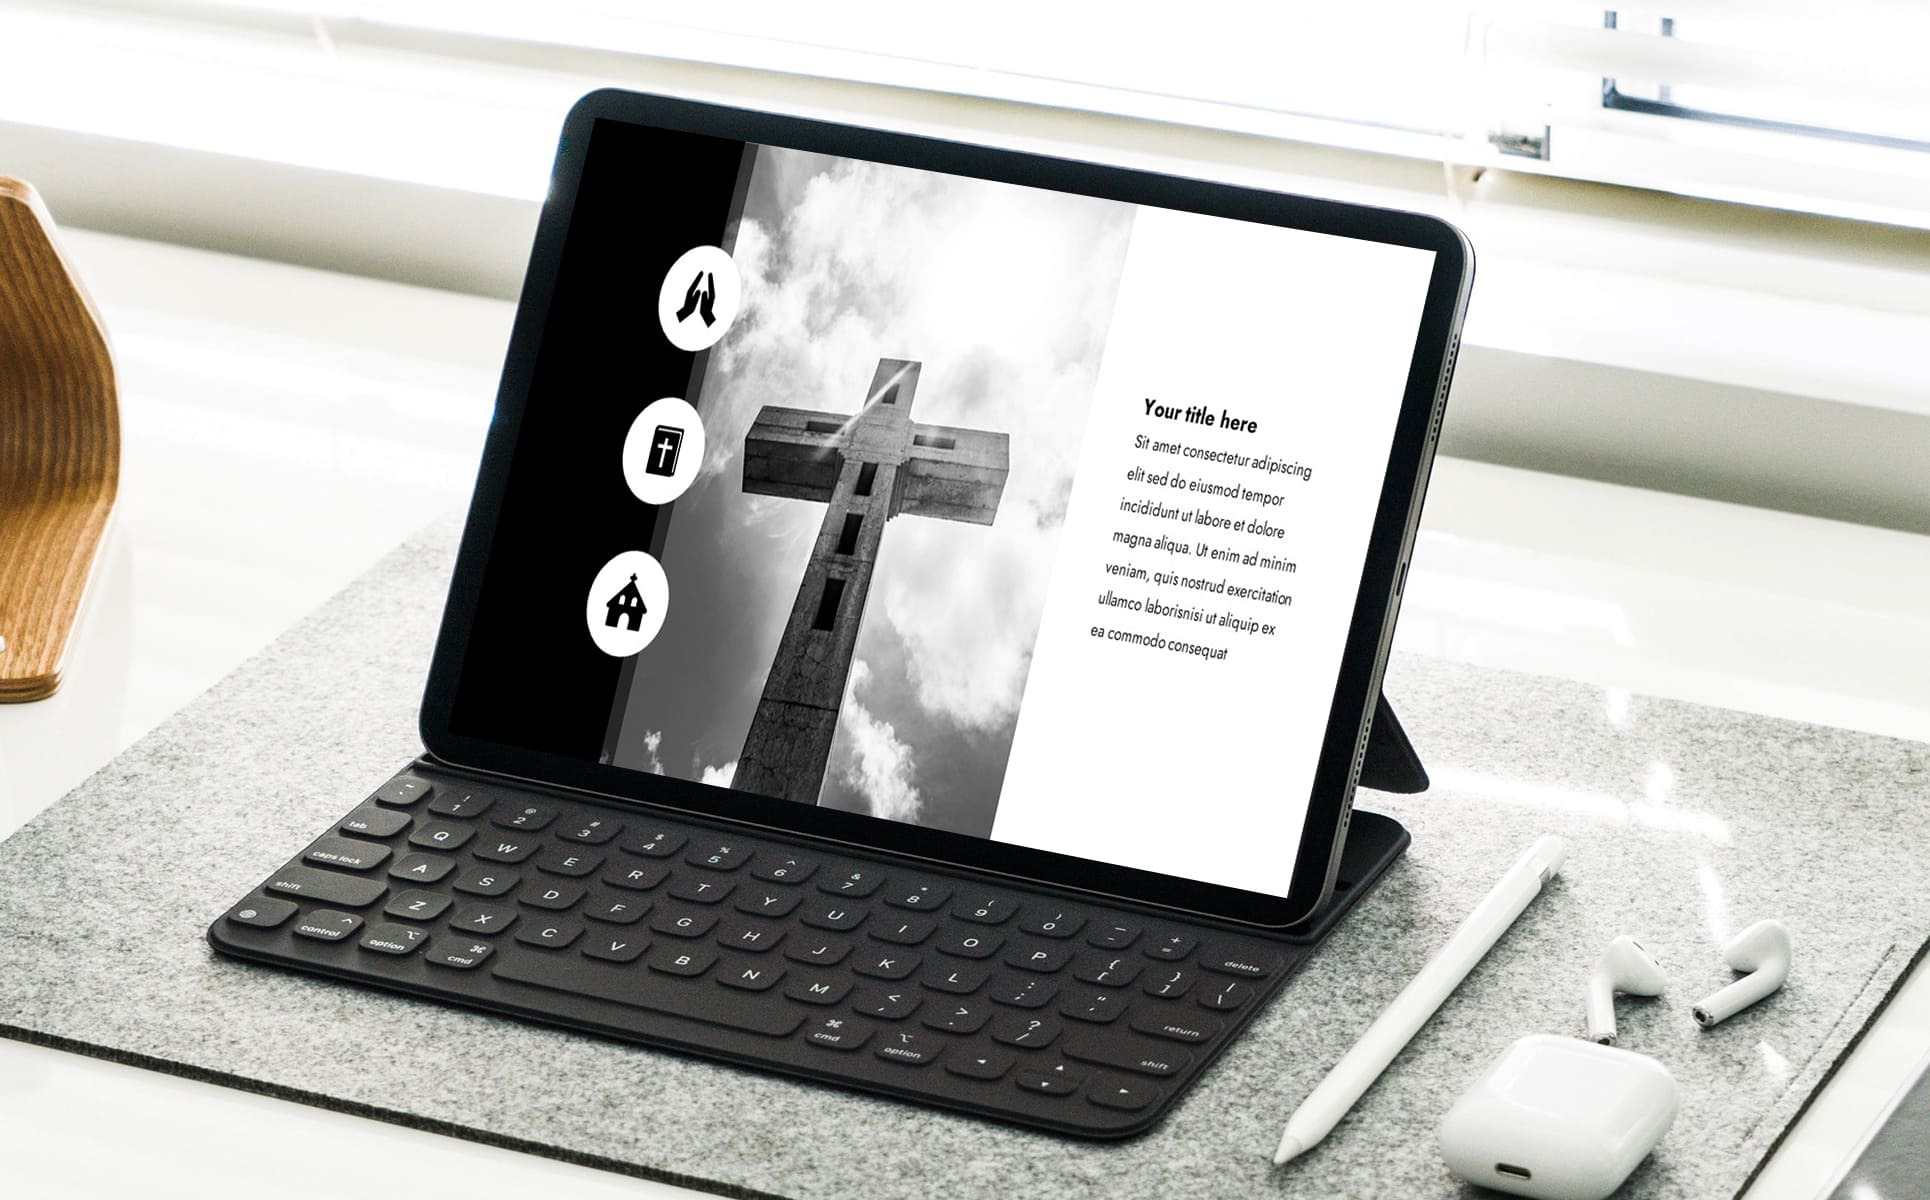 widescreen powerpoint background for worship - A presentation on the tablet